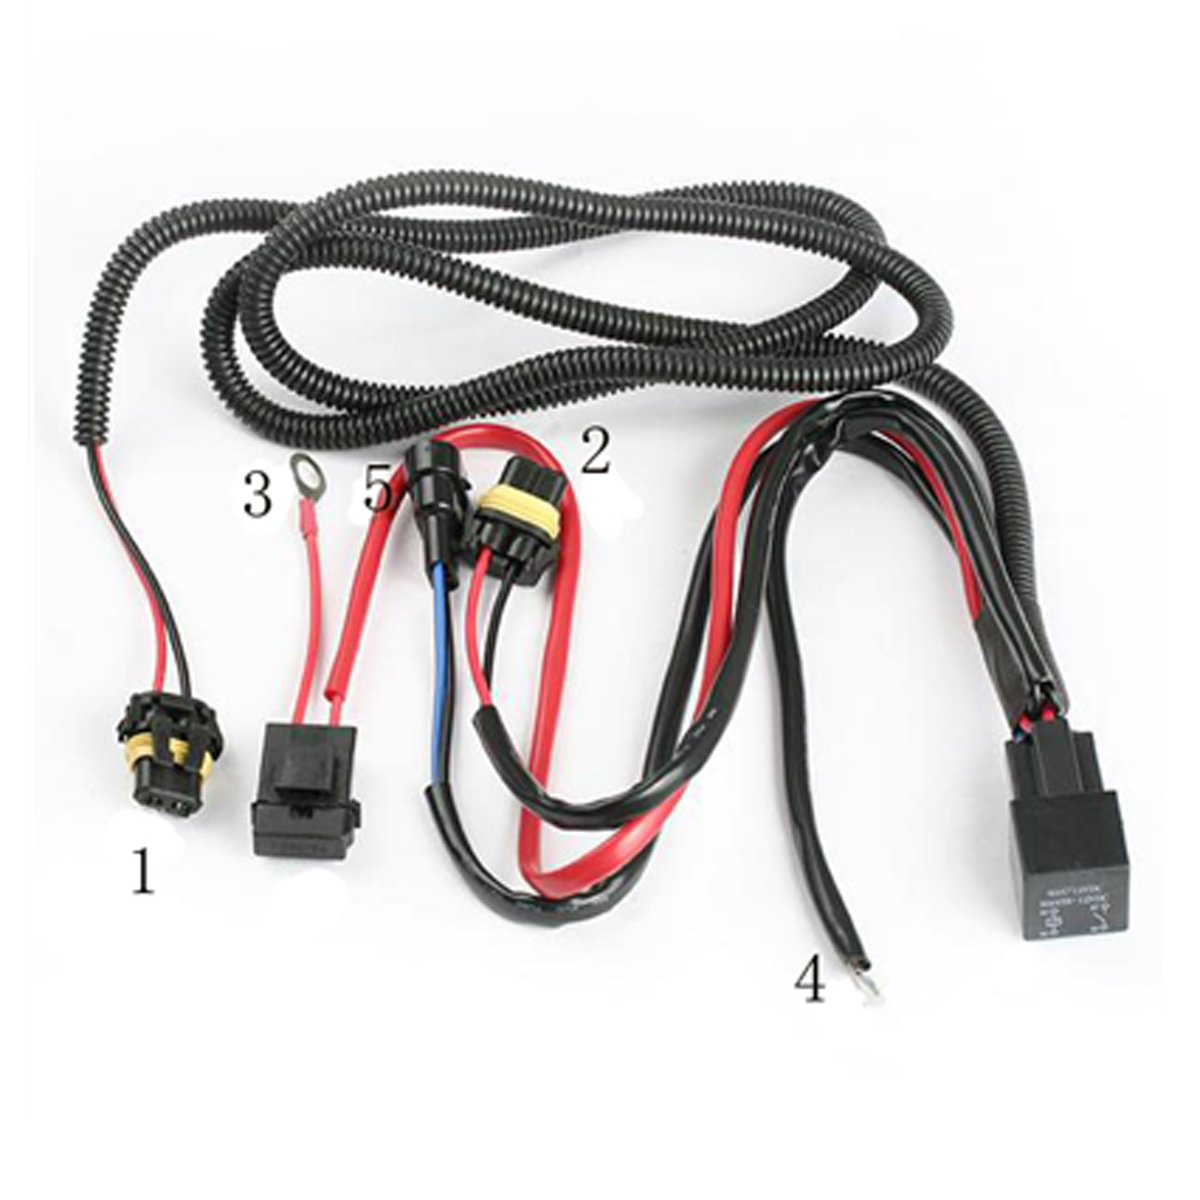 61lwCIuIleL._SL1200_ amazon com innovited universal relay wiring harness for all hid Electrical Harness Connectors at panicattacktreatment.co